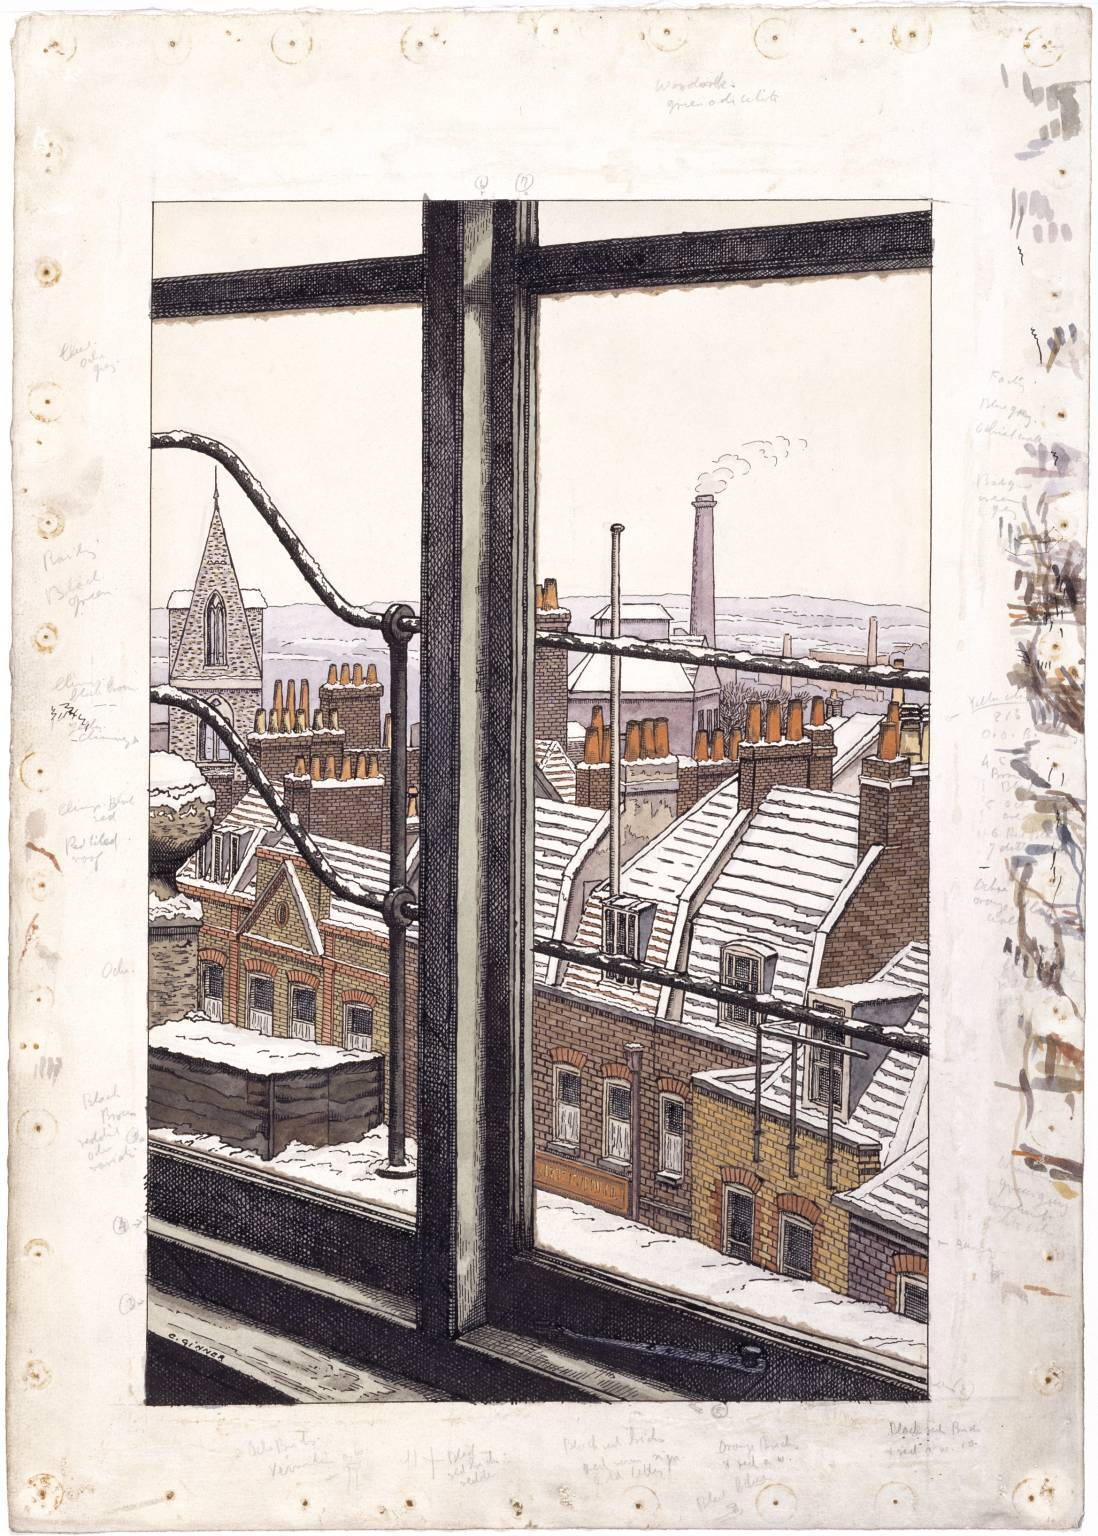 Charles Ginner, From a Hampstead Window, 1923